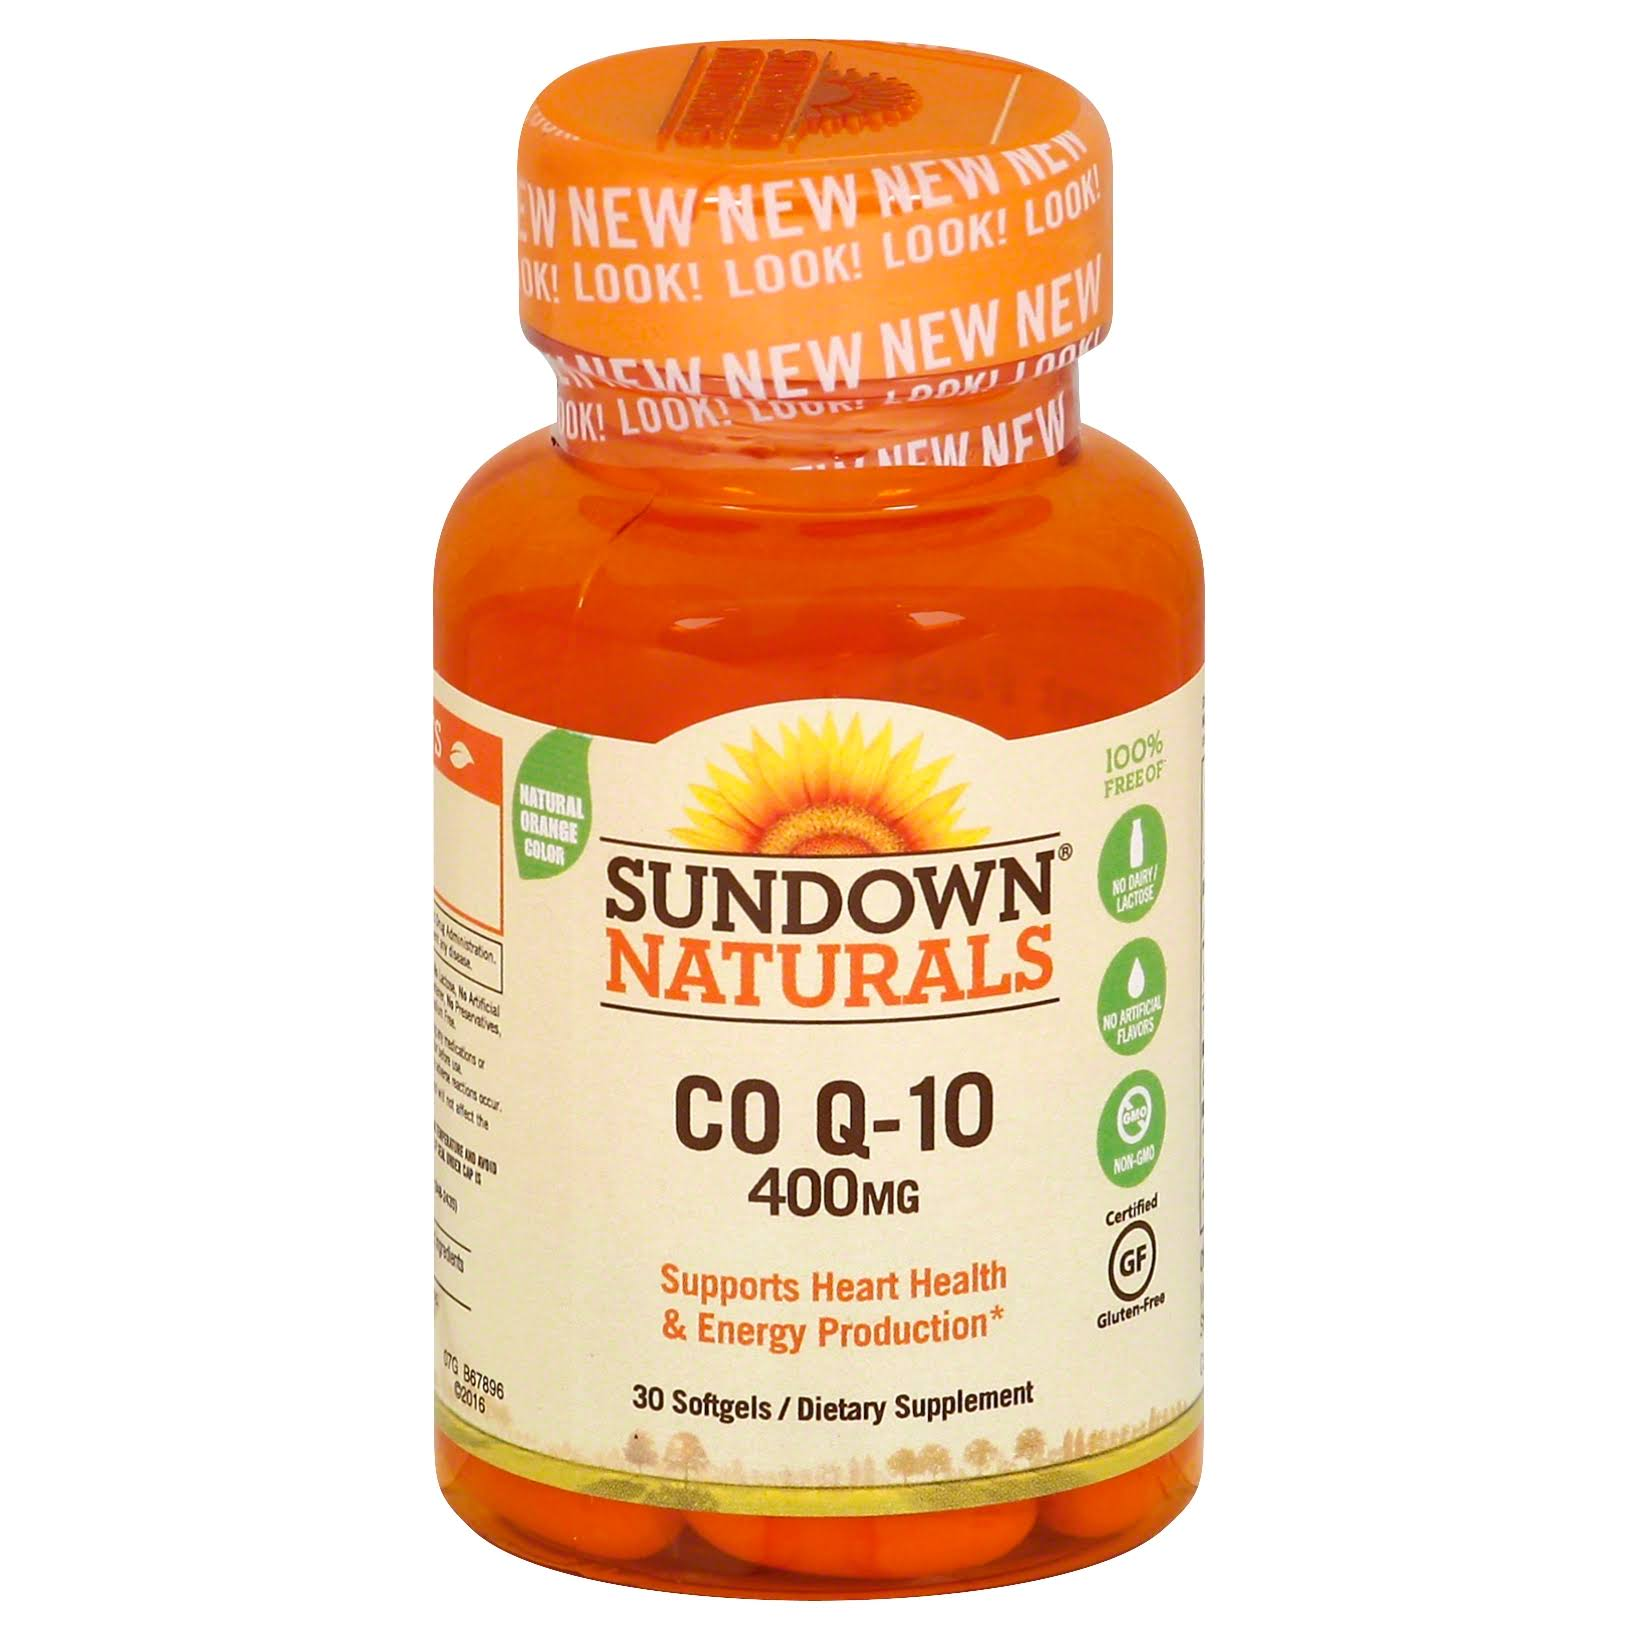 Sundown Naturals Co Q-10 400 mg Softgels